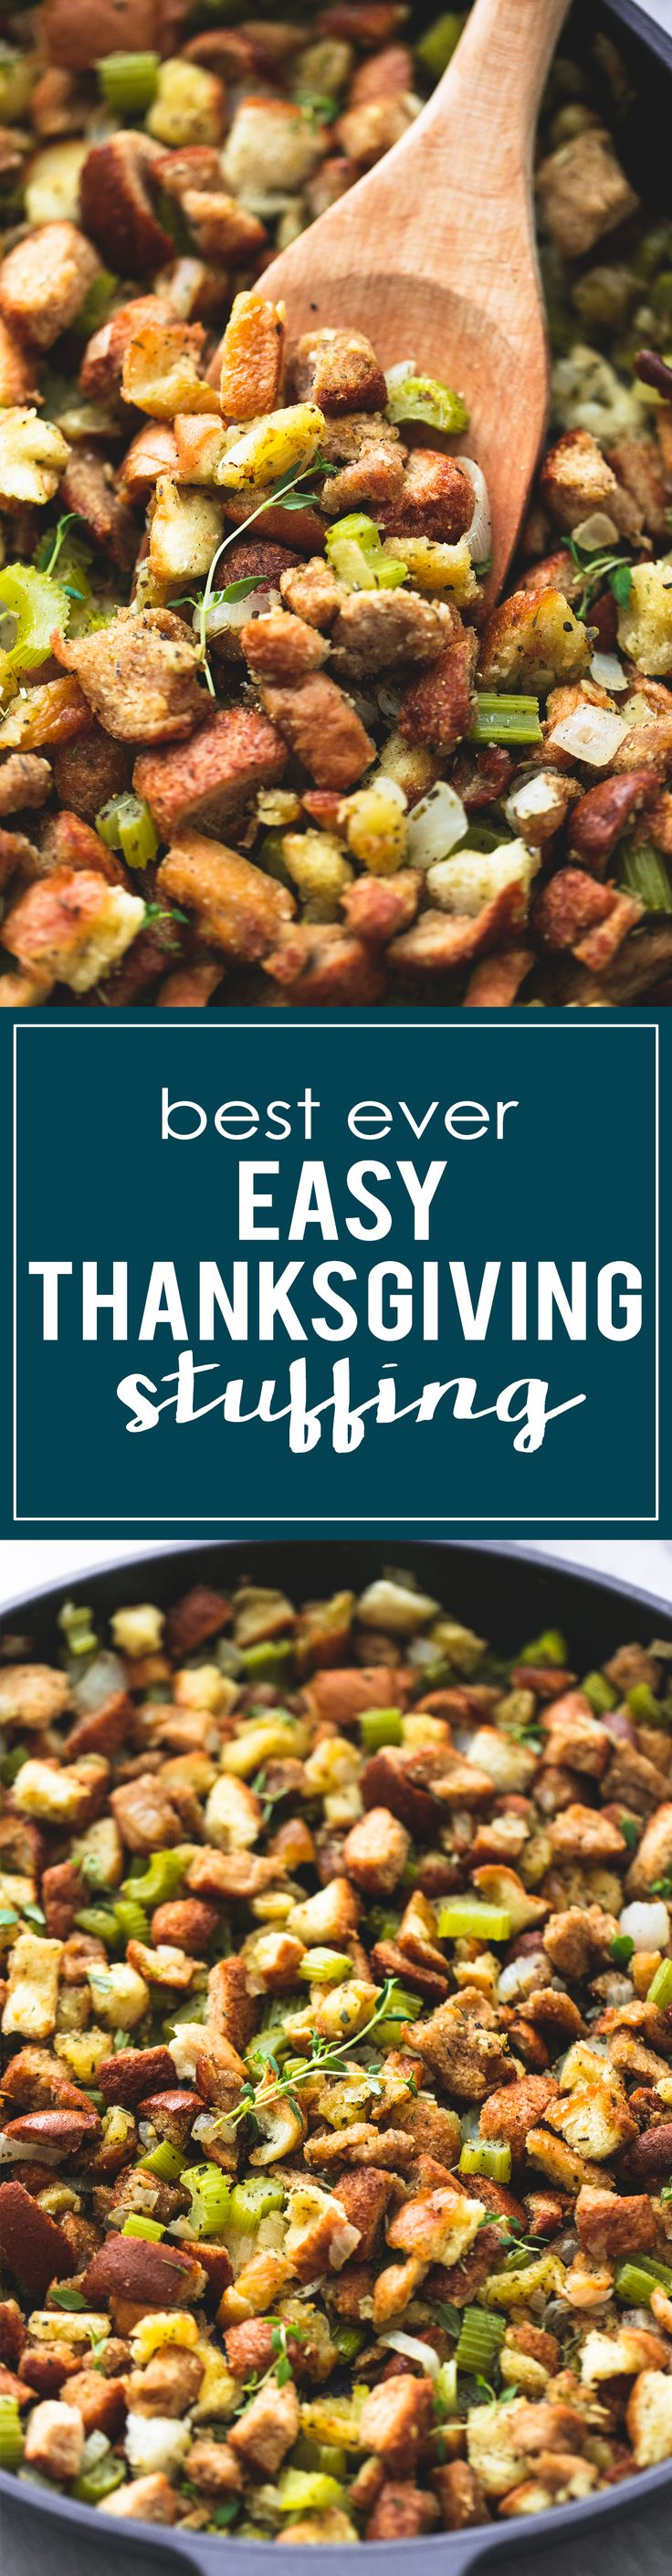 BEST Ever Easy Thanksgiving Stuffing - ready in 15 minutes! | lecremedelacrumb.com